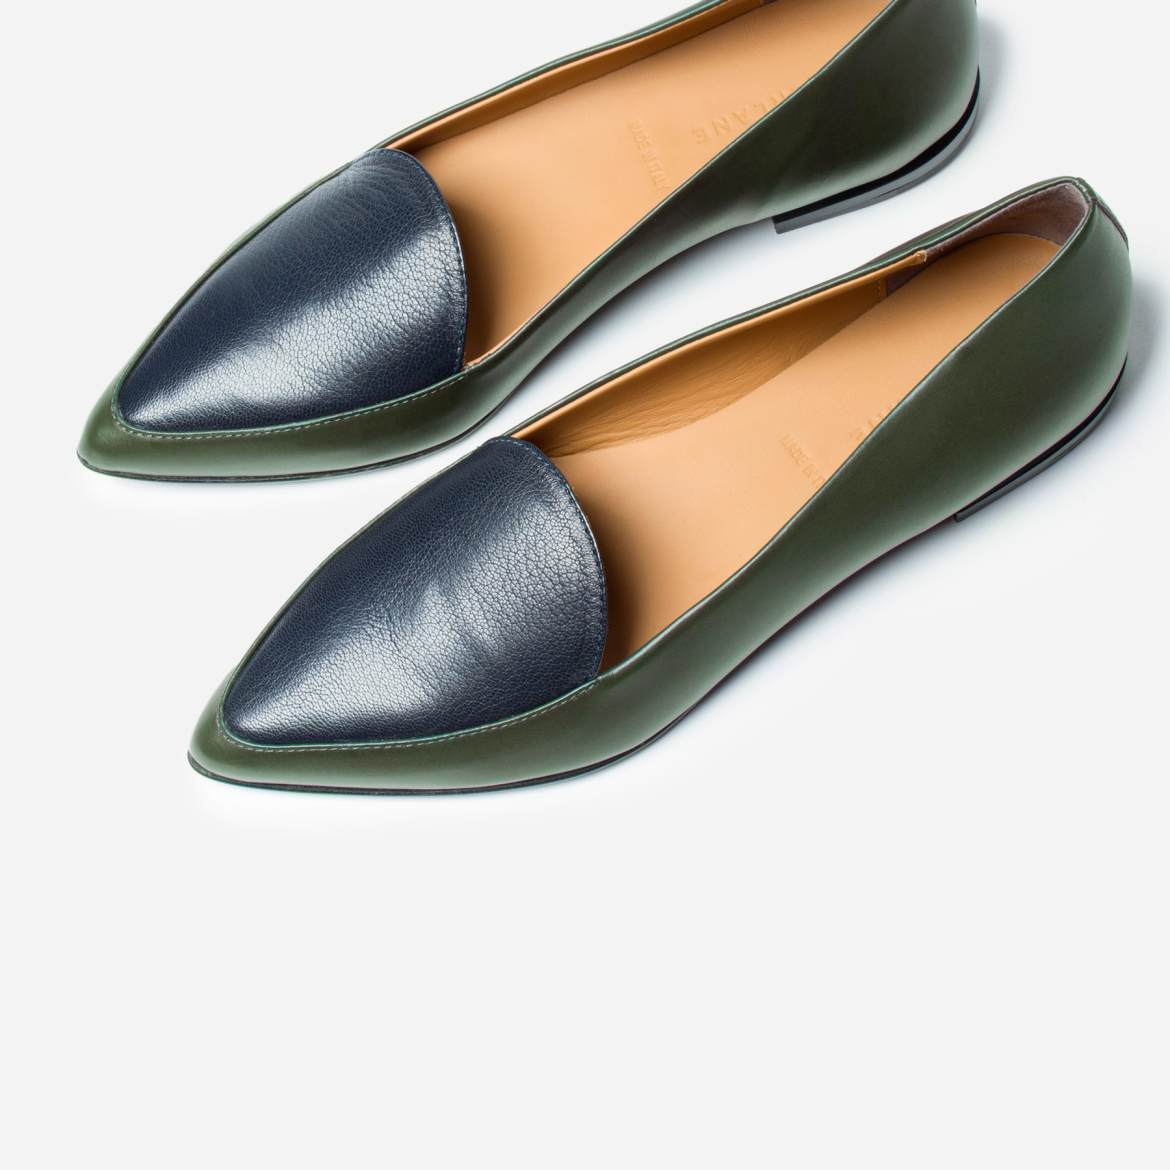 Everlane Modern Point flats in forest/navy, made in Italy